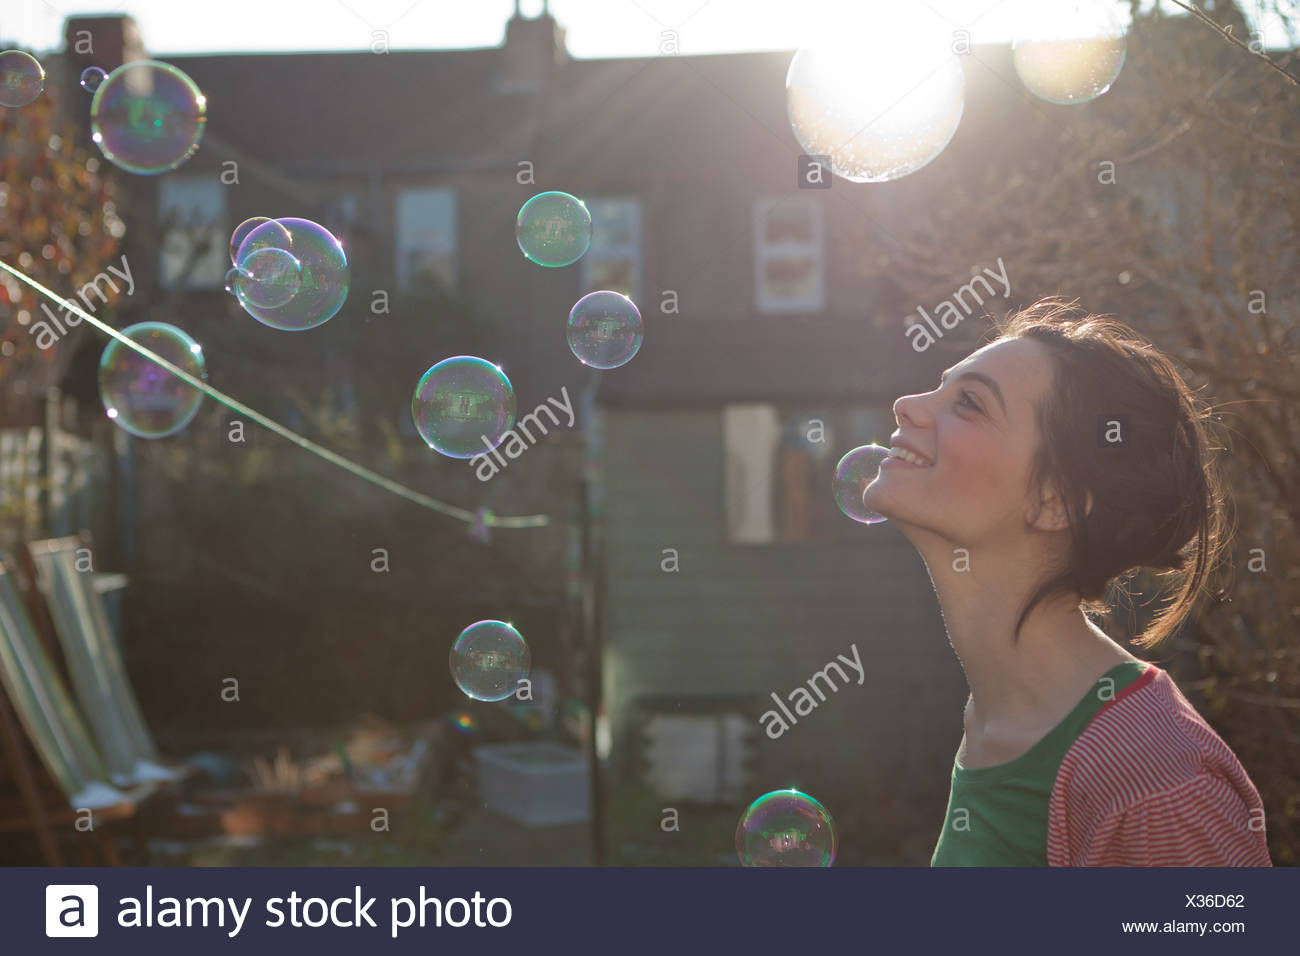 Young woman outdoors with bubbles floating in air - Stock Image